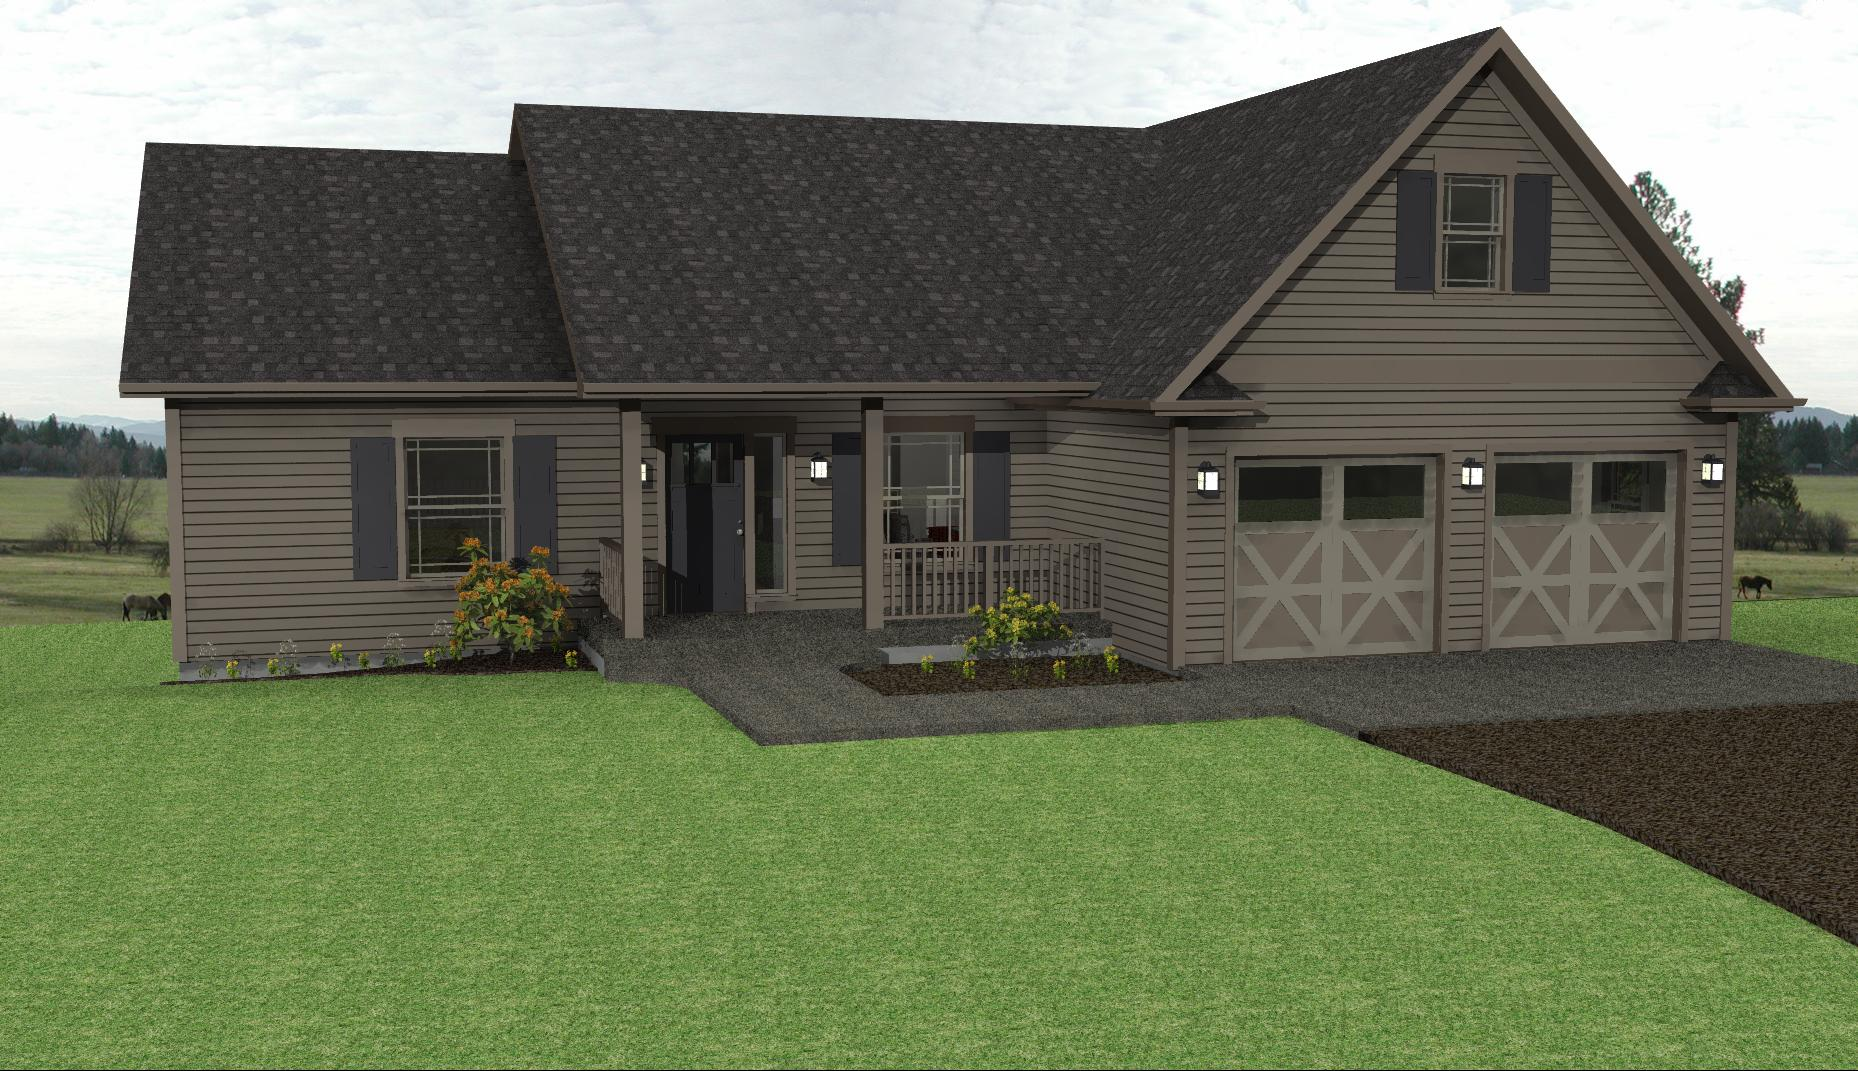 Country ranch home plans find house plans for Ranch home with porch